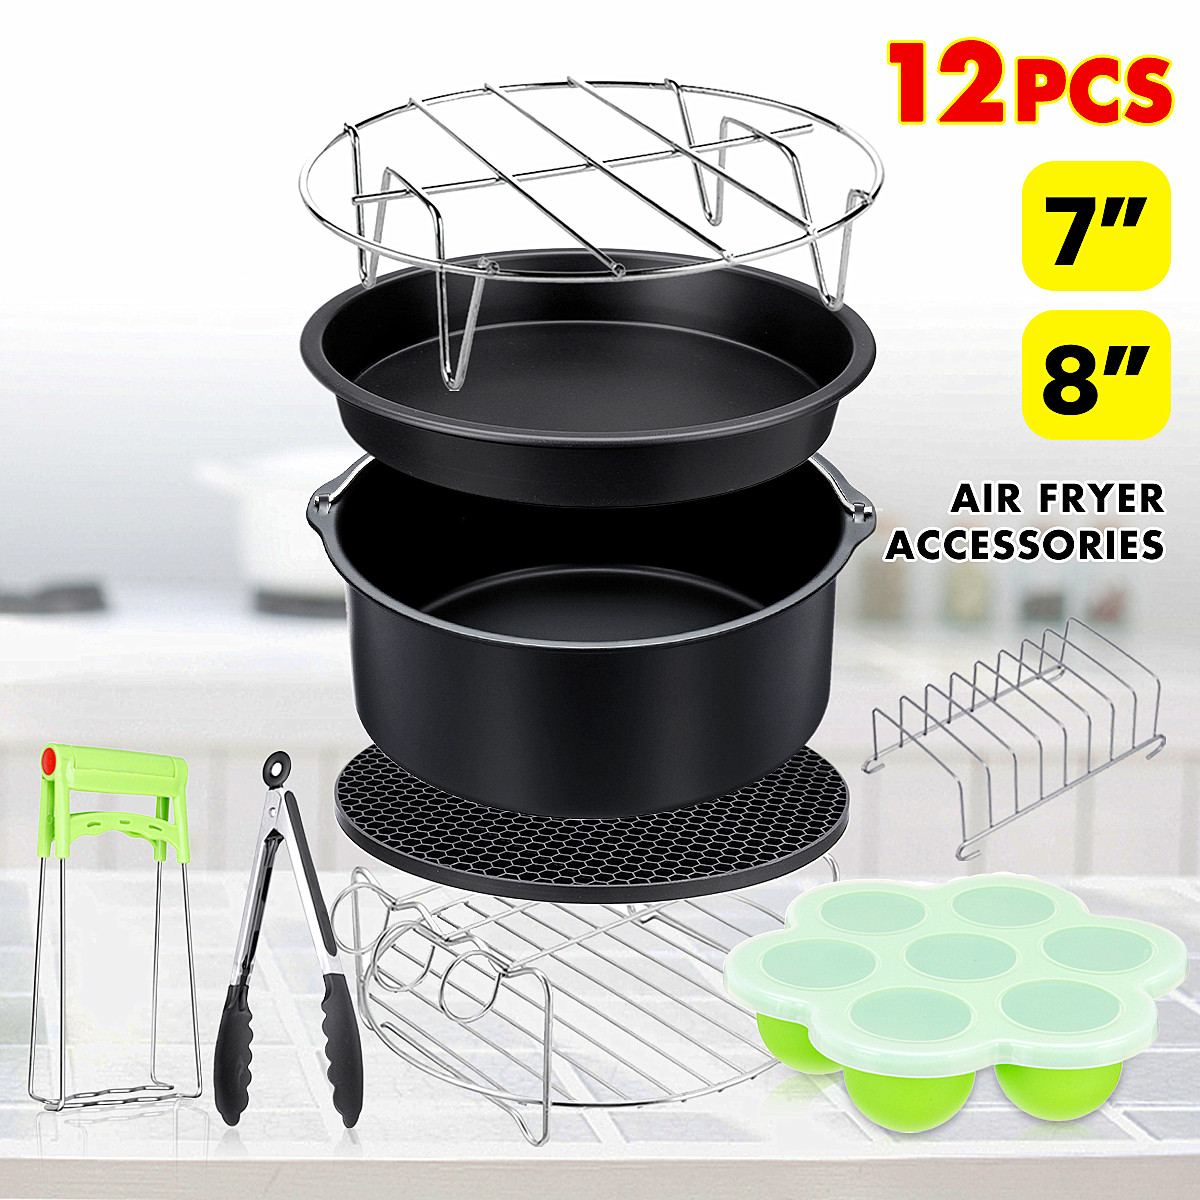 12pcs/set 8 Inches  Air Fryer Accessories Home Kitchen Cooking Tools For Barbecue, Baking, Cooking Fit For  4.2-6.8QT Air Fryer